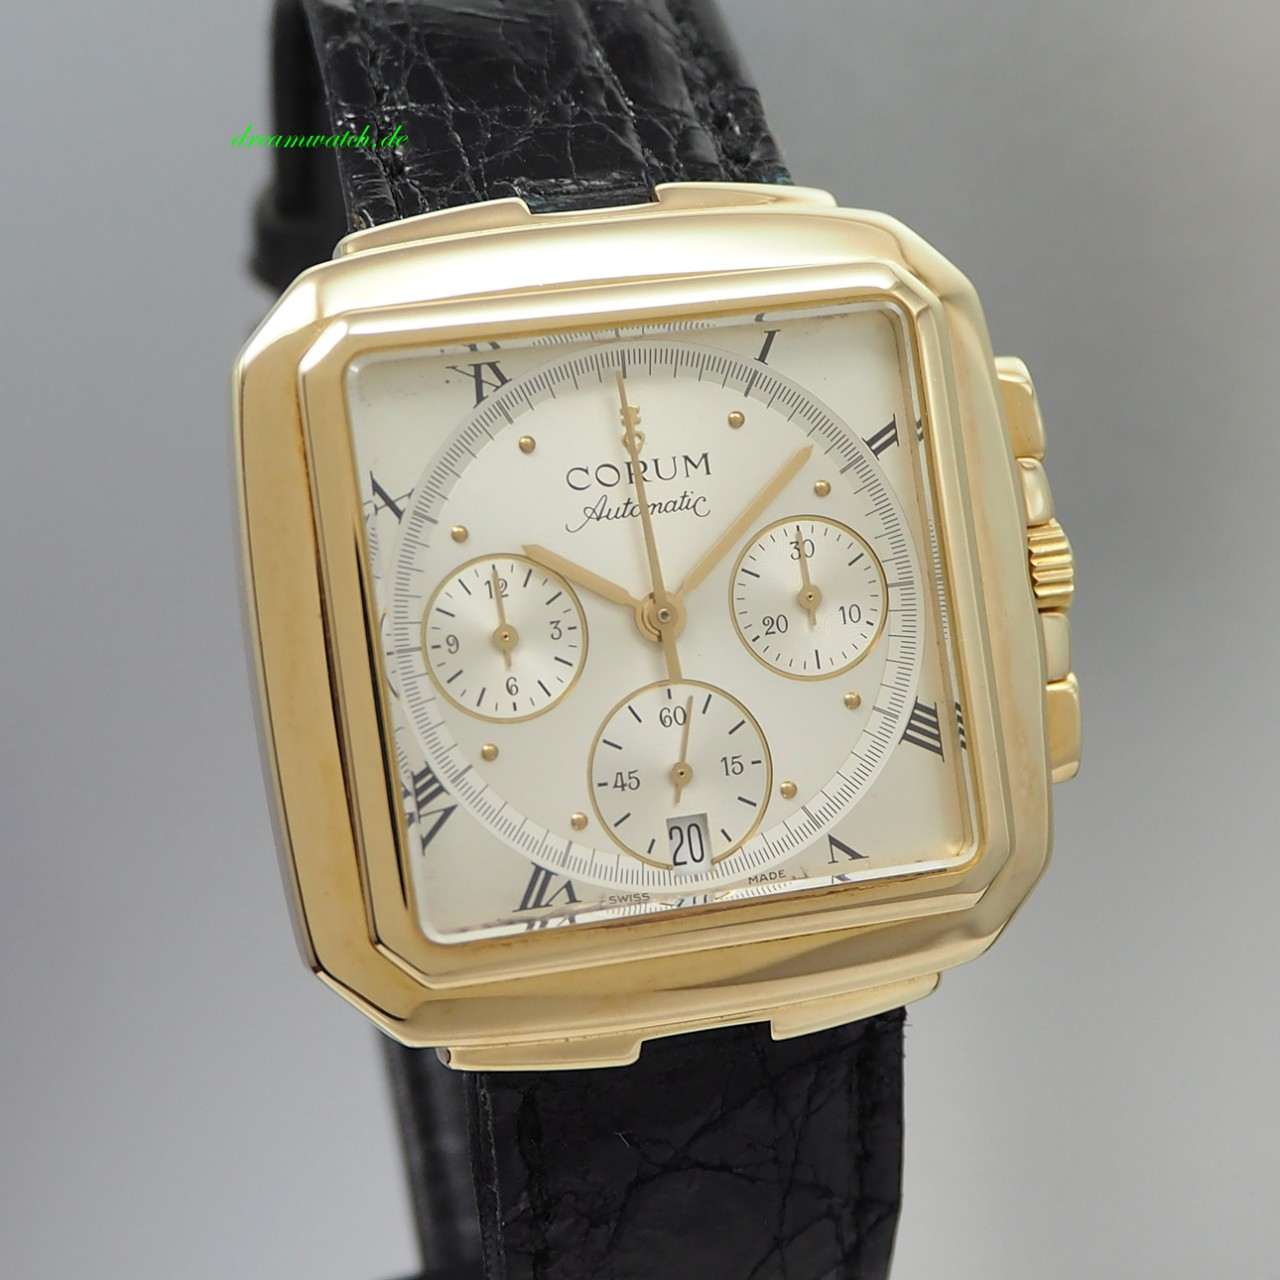 Corum Square Chronograph Gold 18k/ 750 -Limited Edition